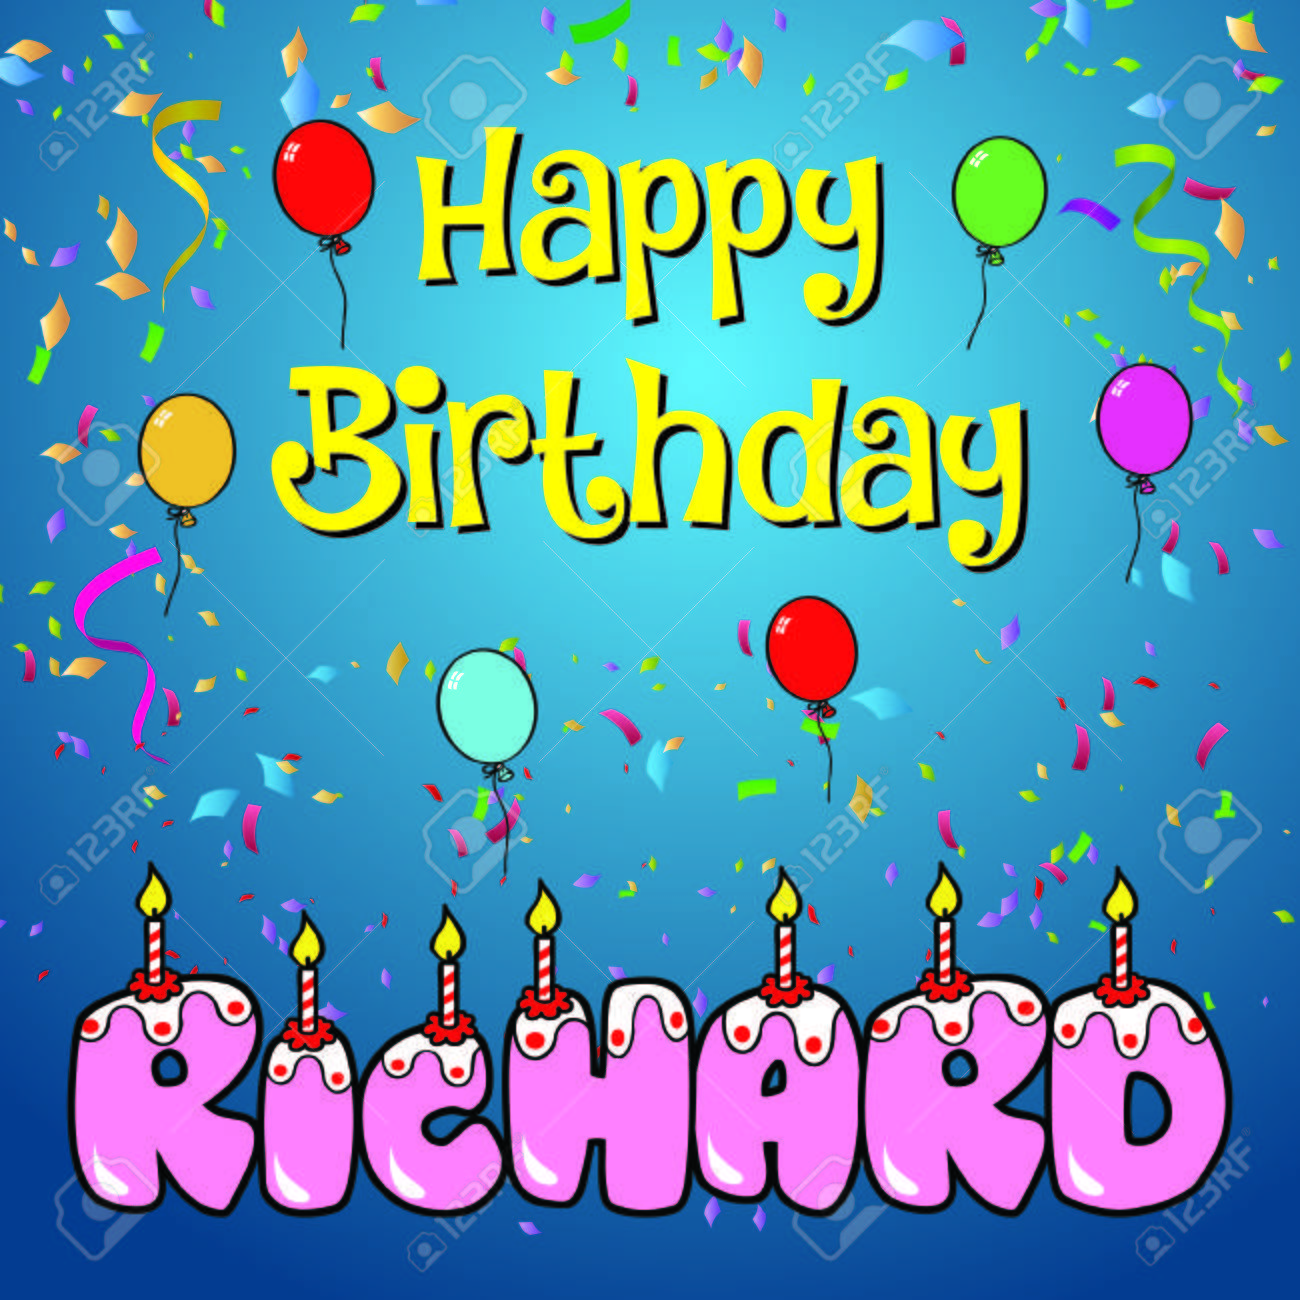 Image result for happy birthday richard